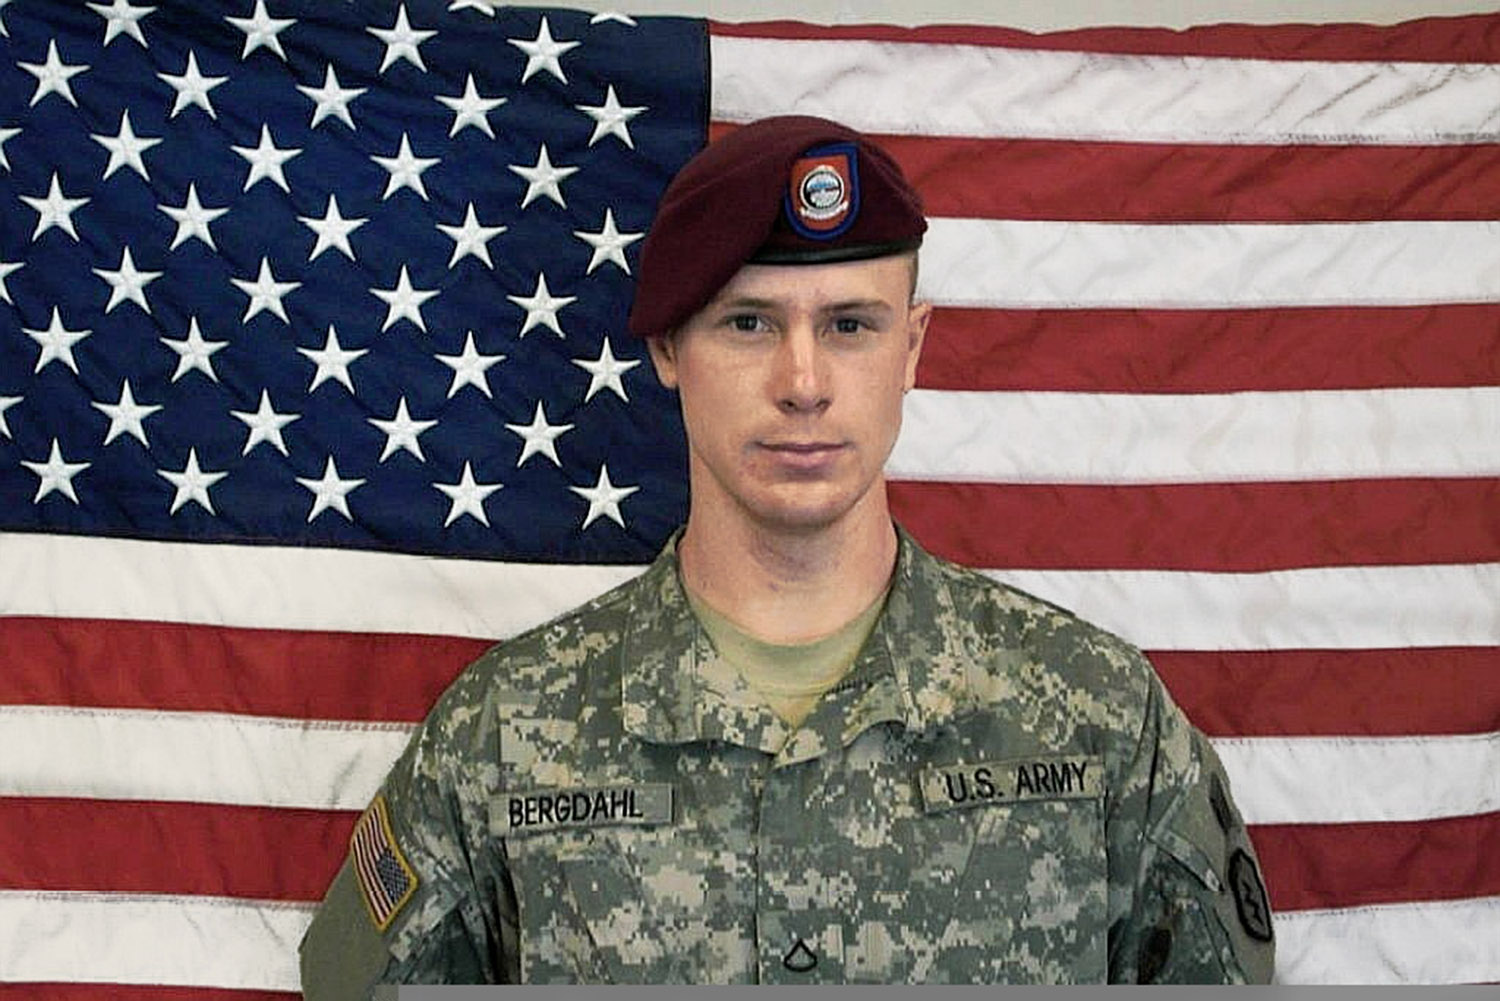 Sgt. Bowe Bergdahl in an  undated file image provided by the U.S. Army.